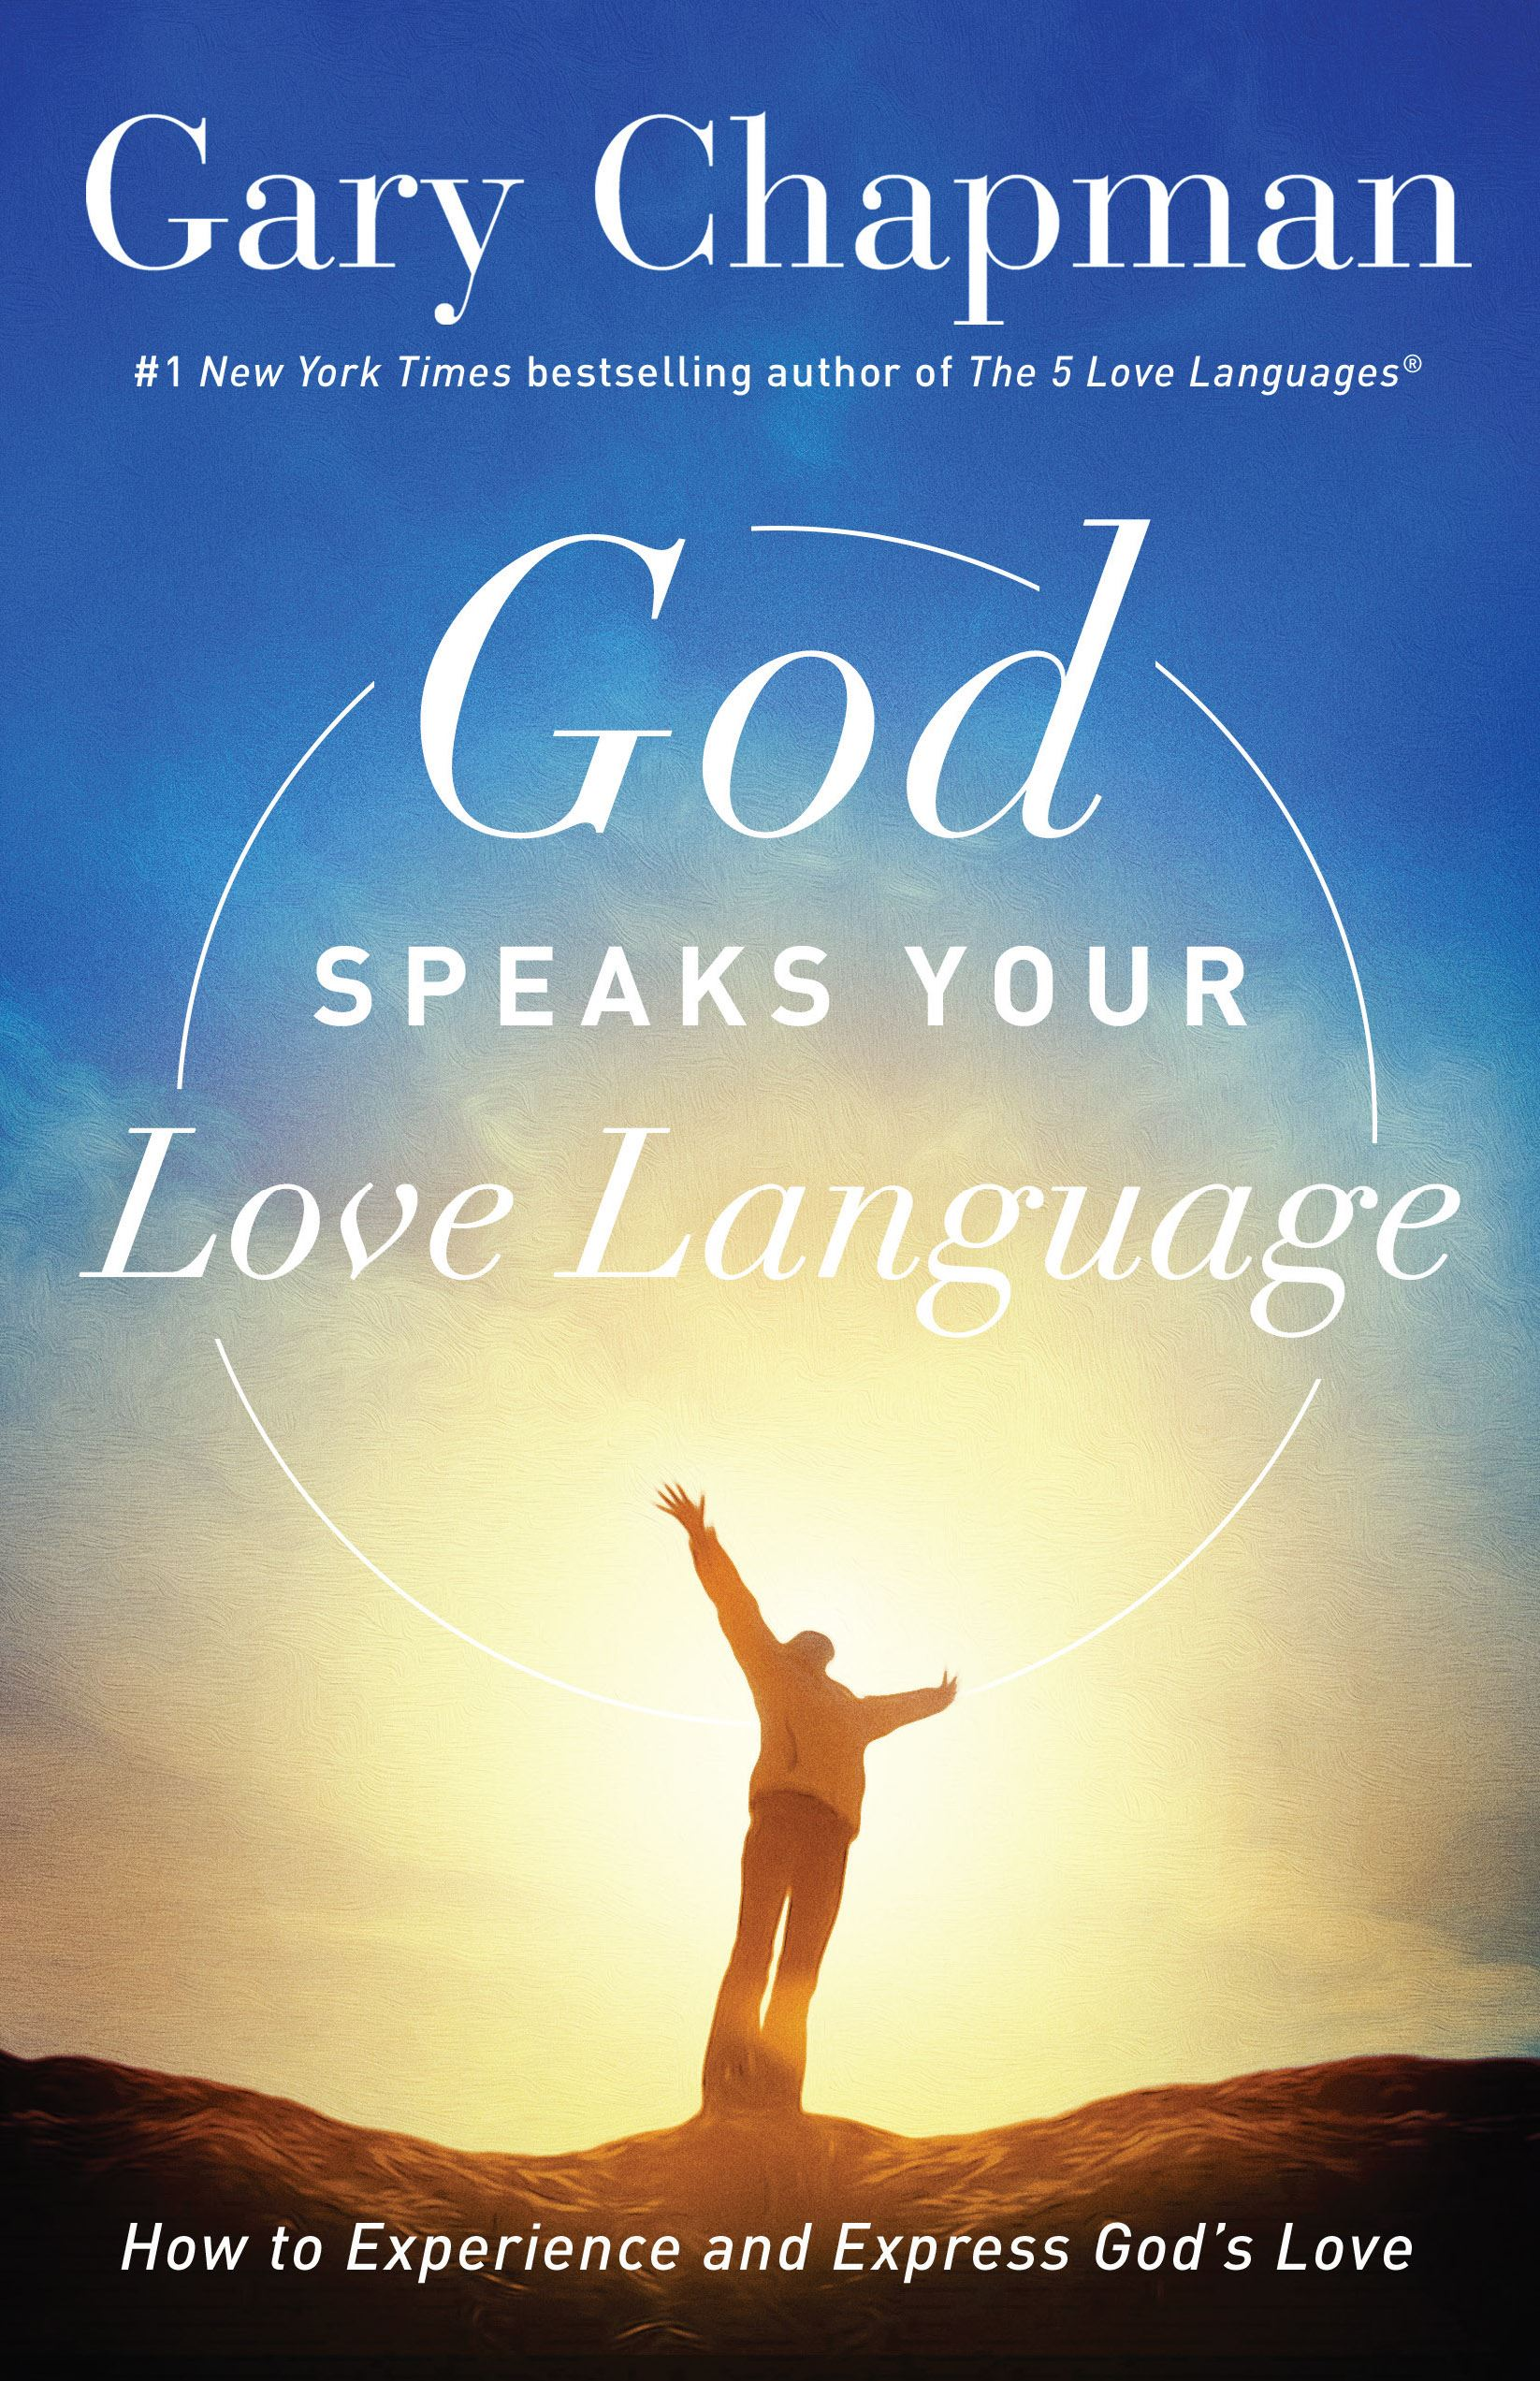 Adapted From Speaks Your Love Language By Gary Chapman 2018 Published By Moody Publishers Used With Permission